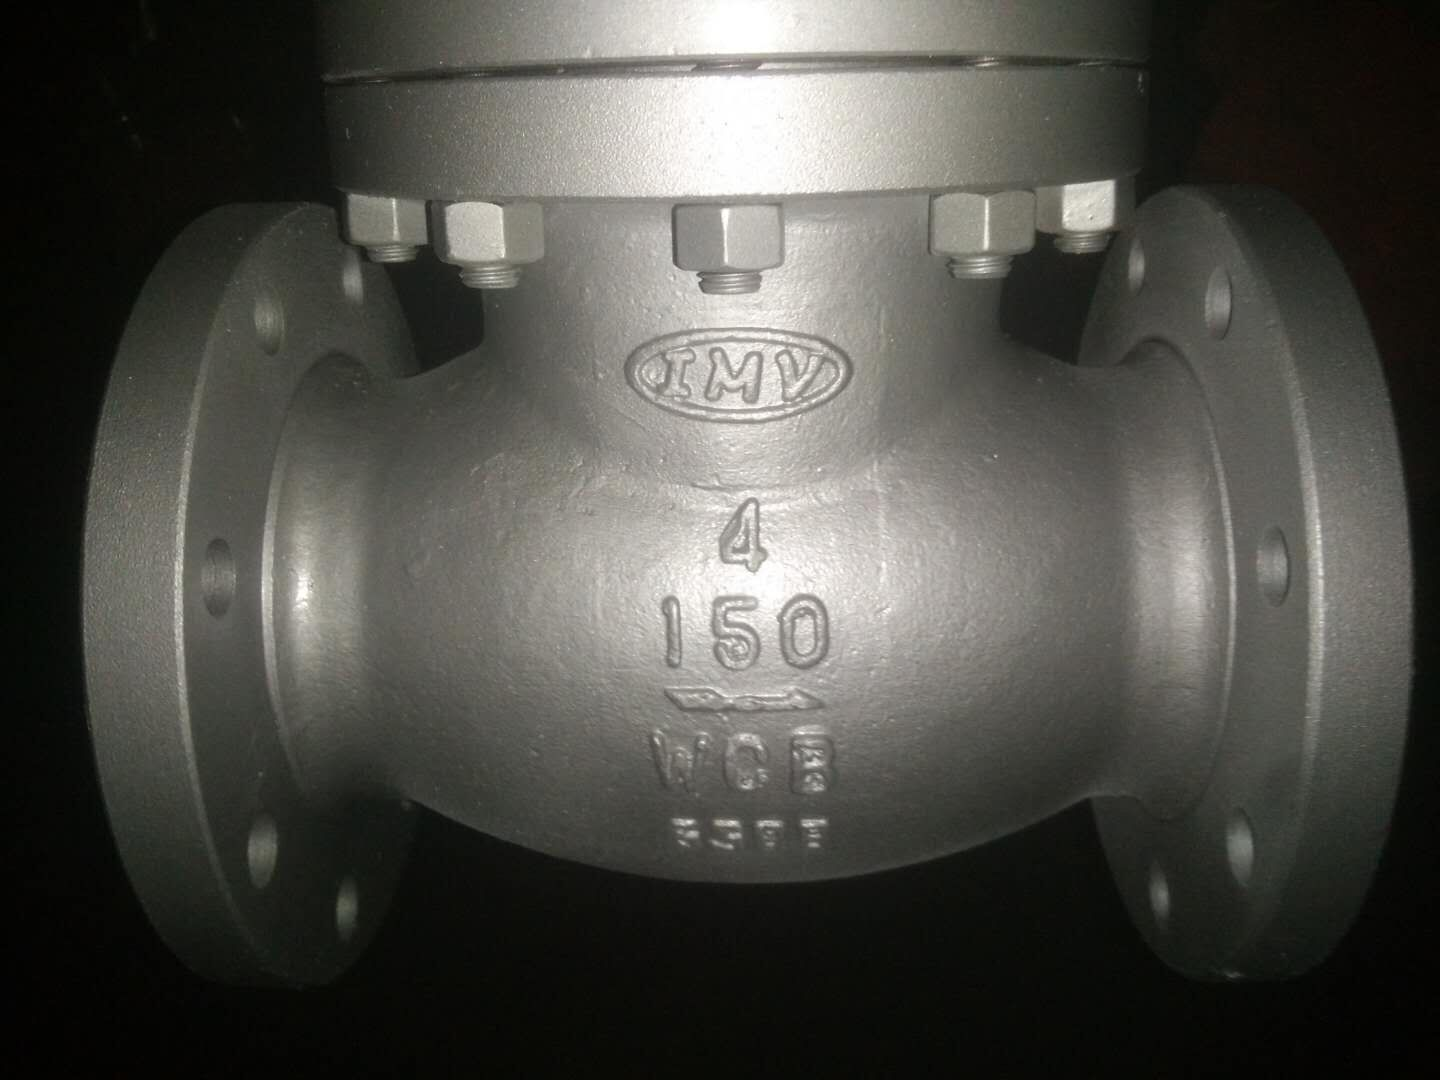 Silent check valve principle, characteristics, scope of application